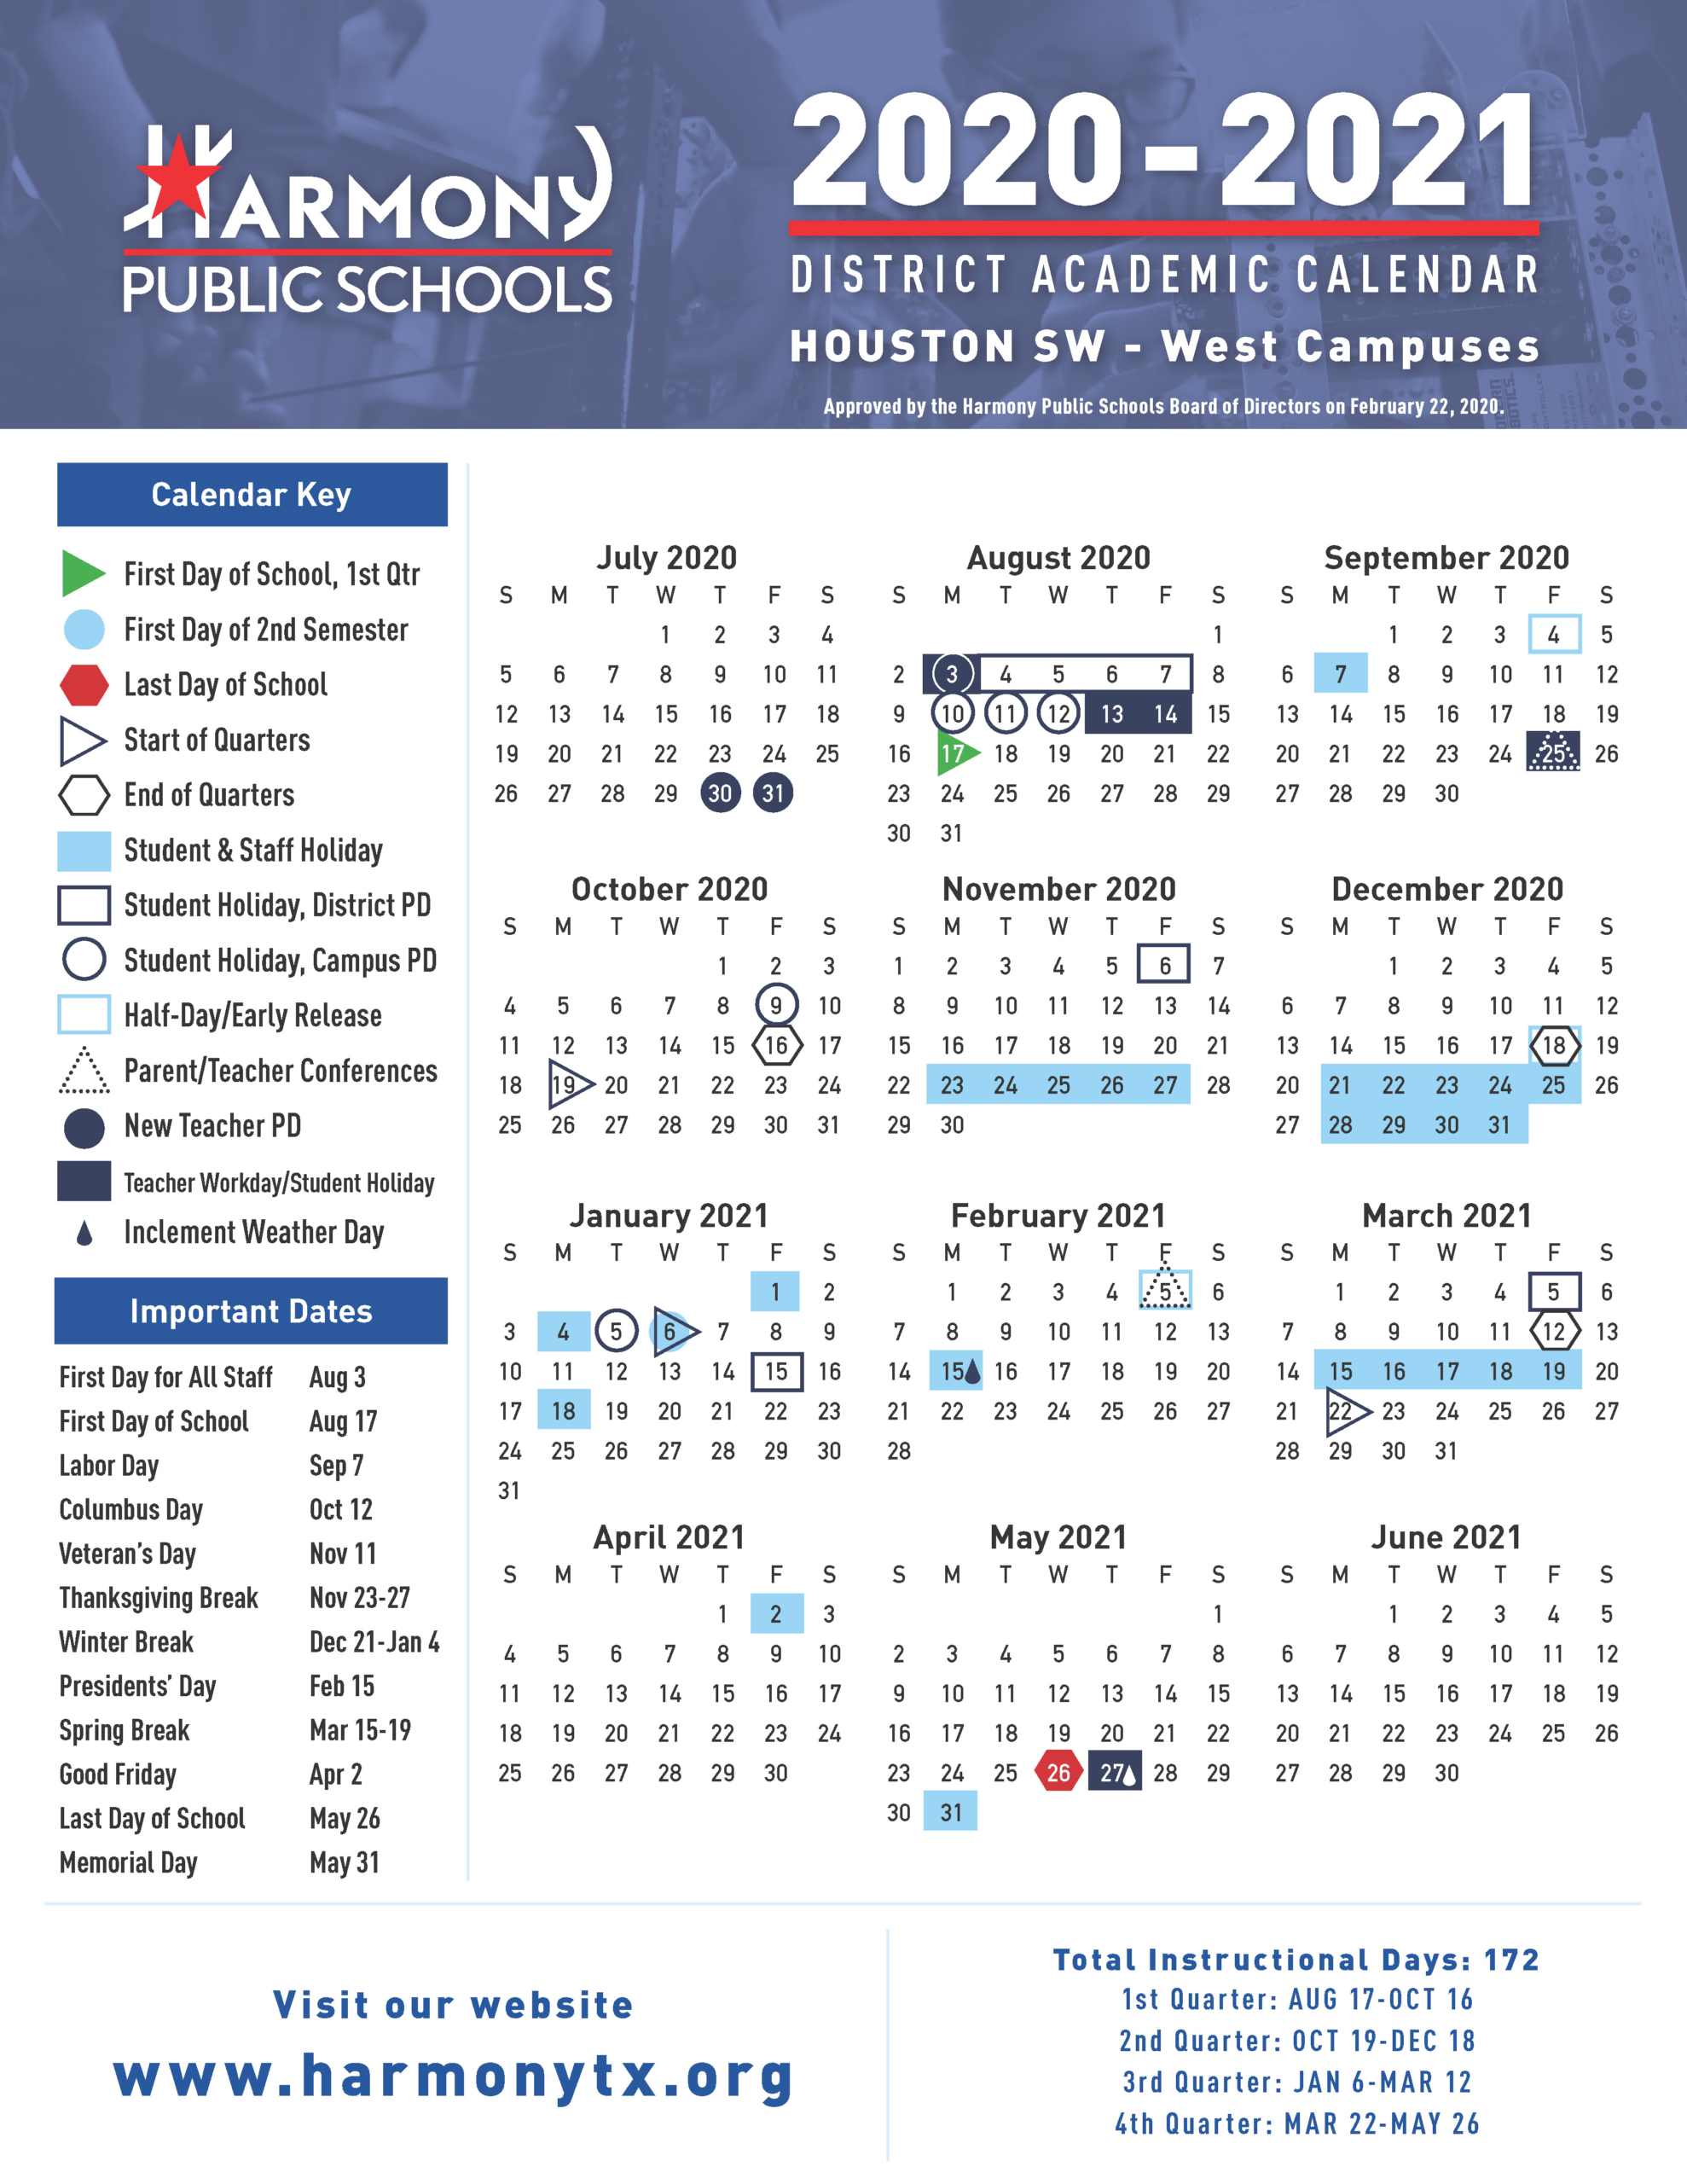 School Calendar For 2021 Academic Calendar! – Harmony School of Innovation – Sugar Land